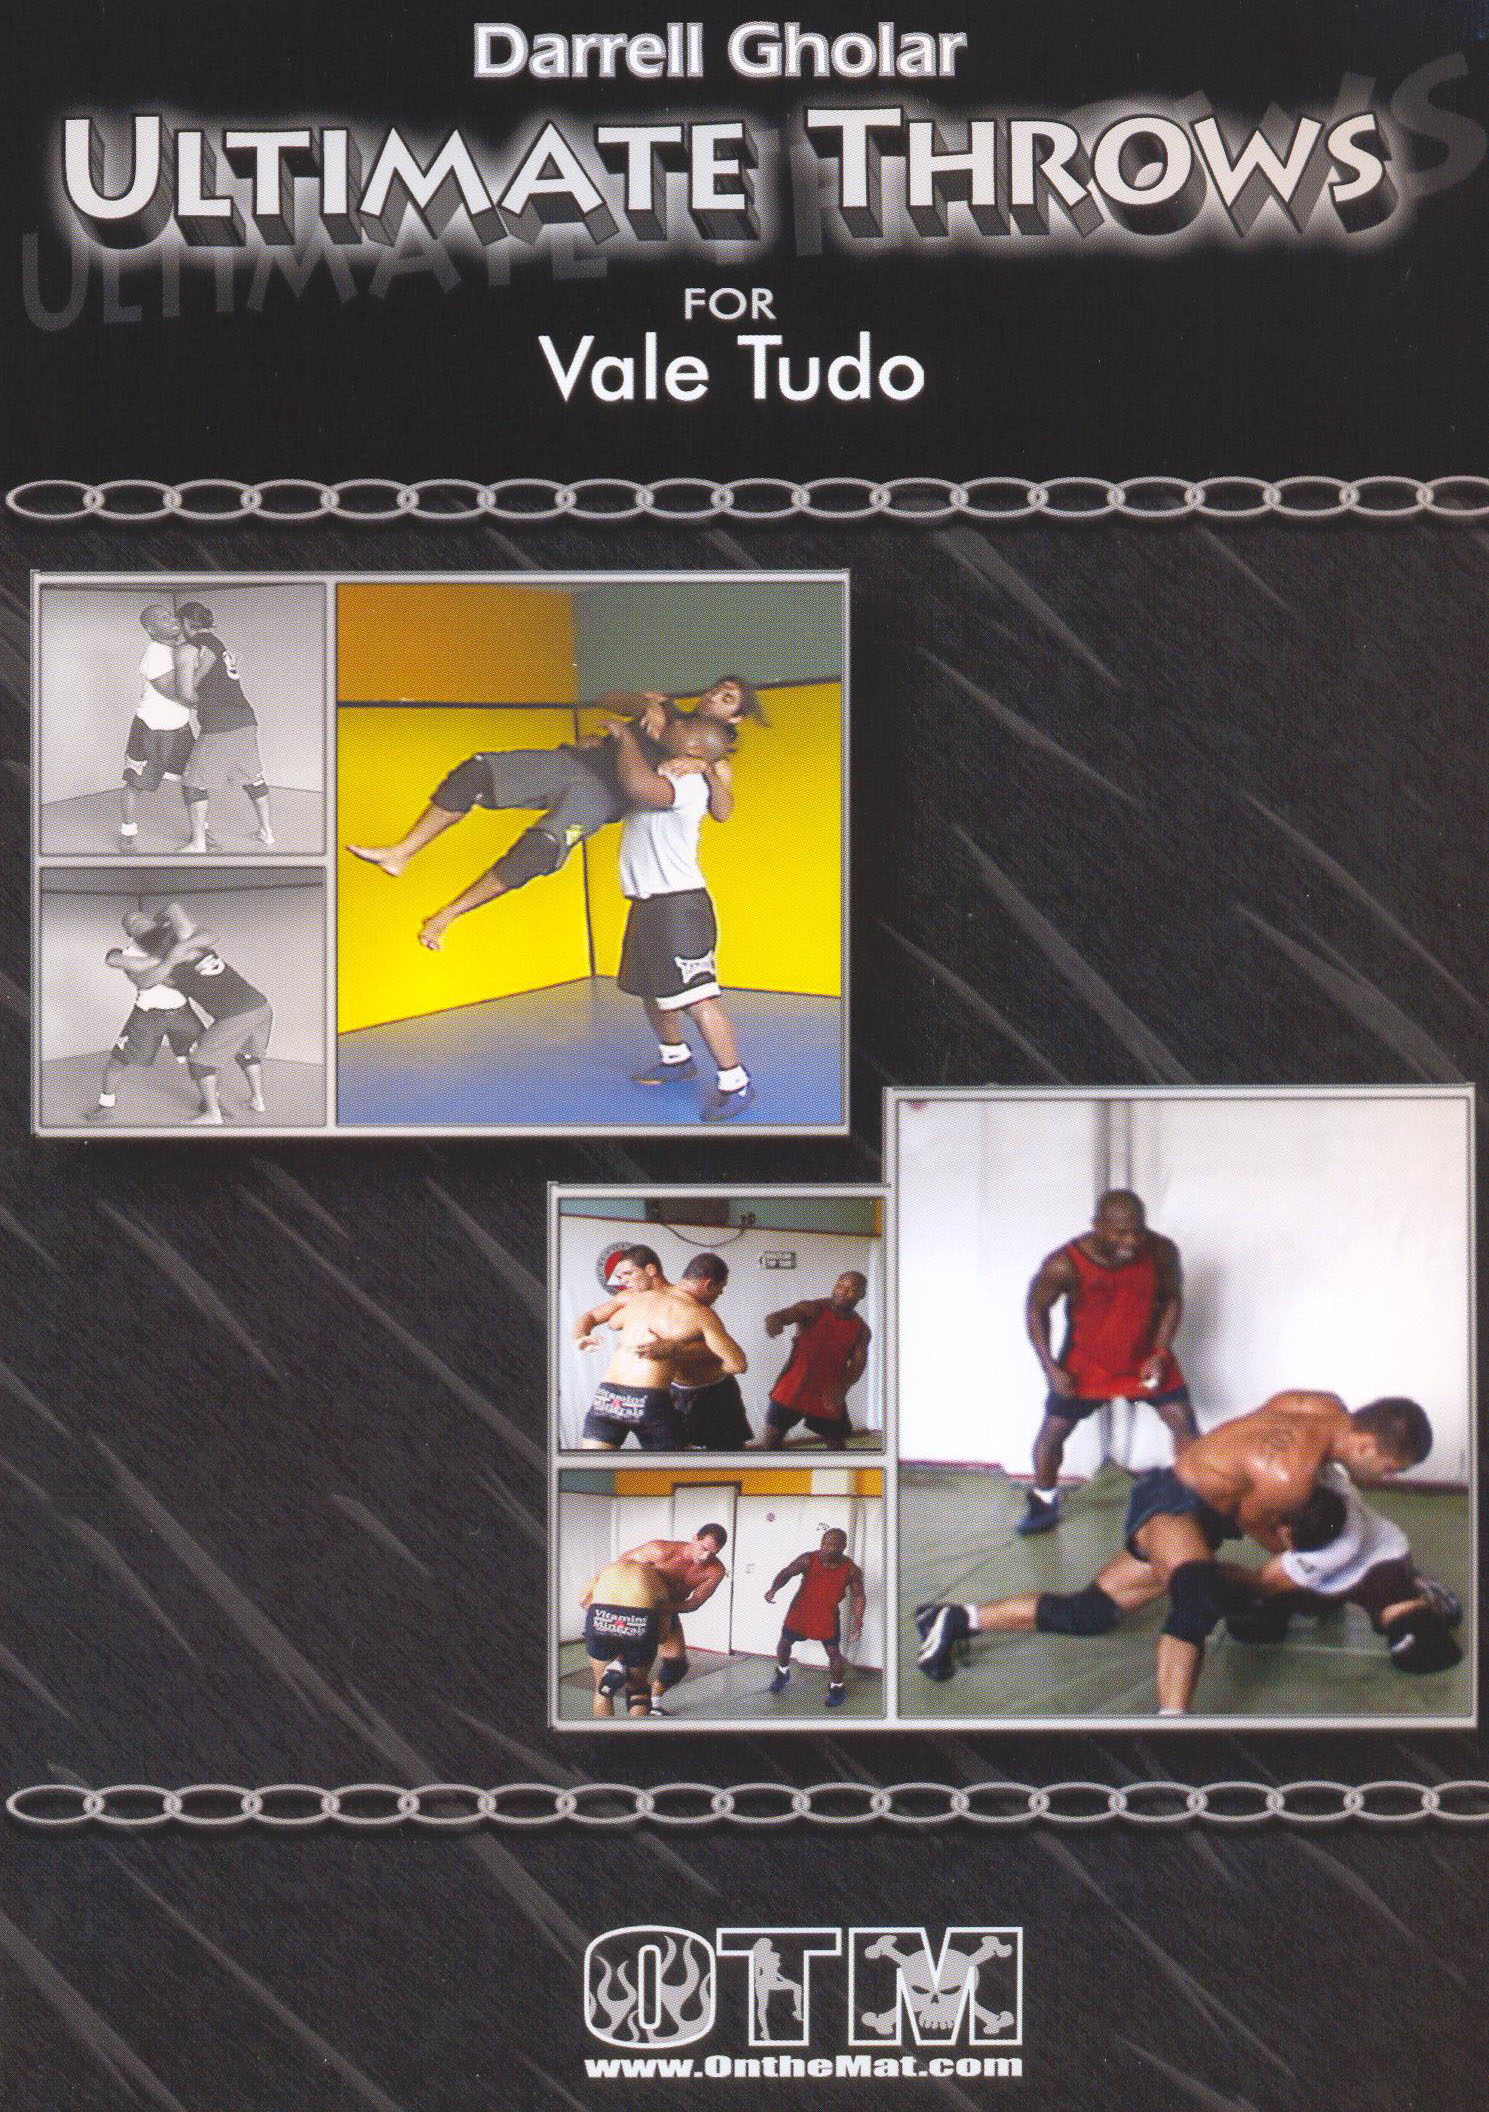 Darrell Gholar's Ultimate Throws for Vale Tudo